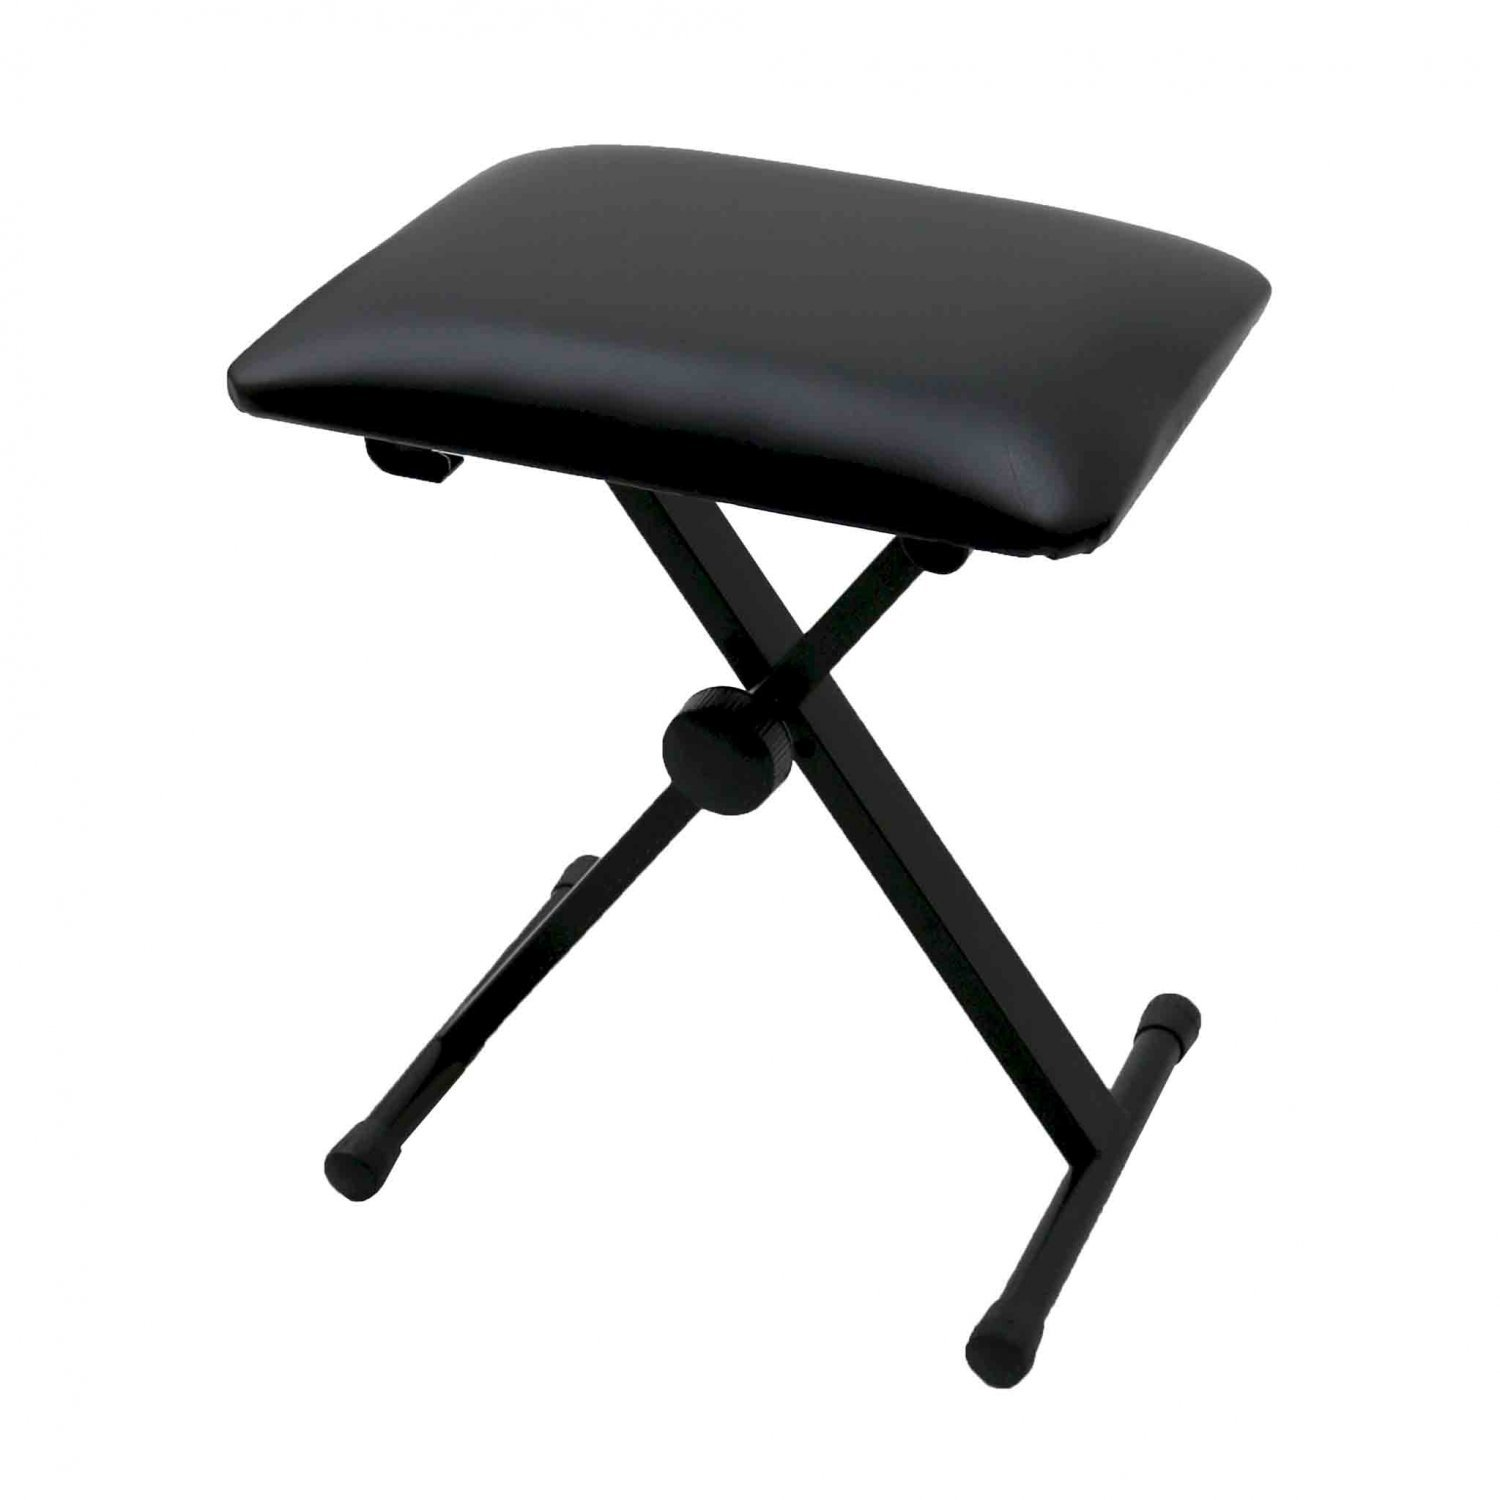 Delightful Keyboard Piano Bench Stool Seat Chair Throne Adjustable Portable